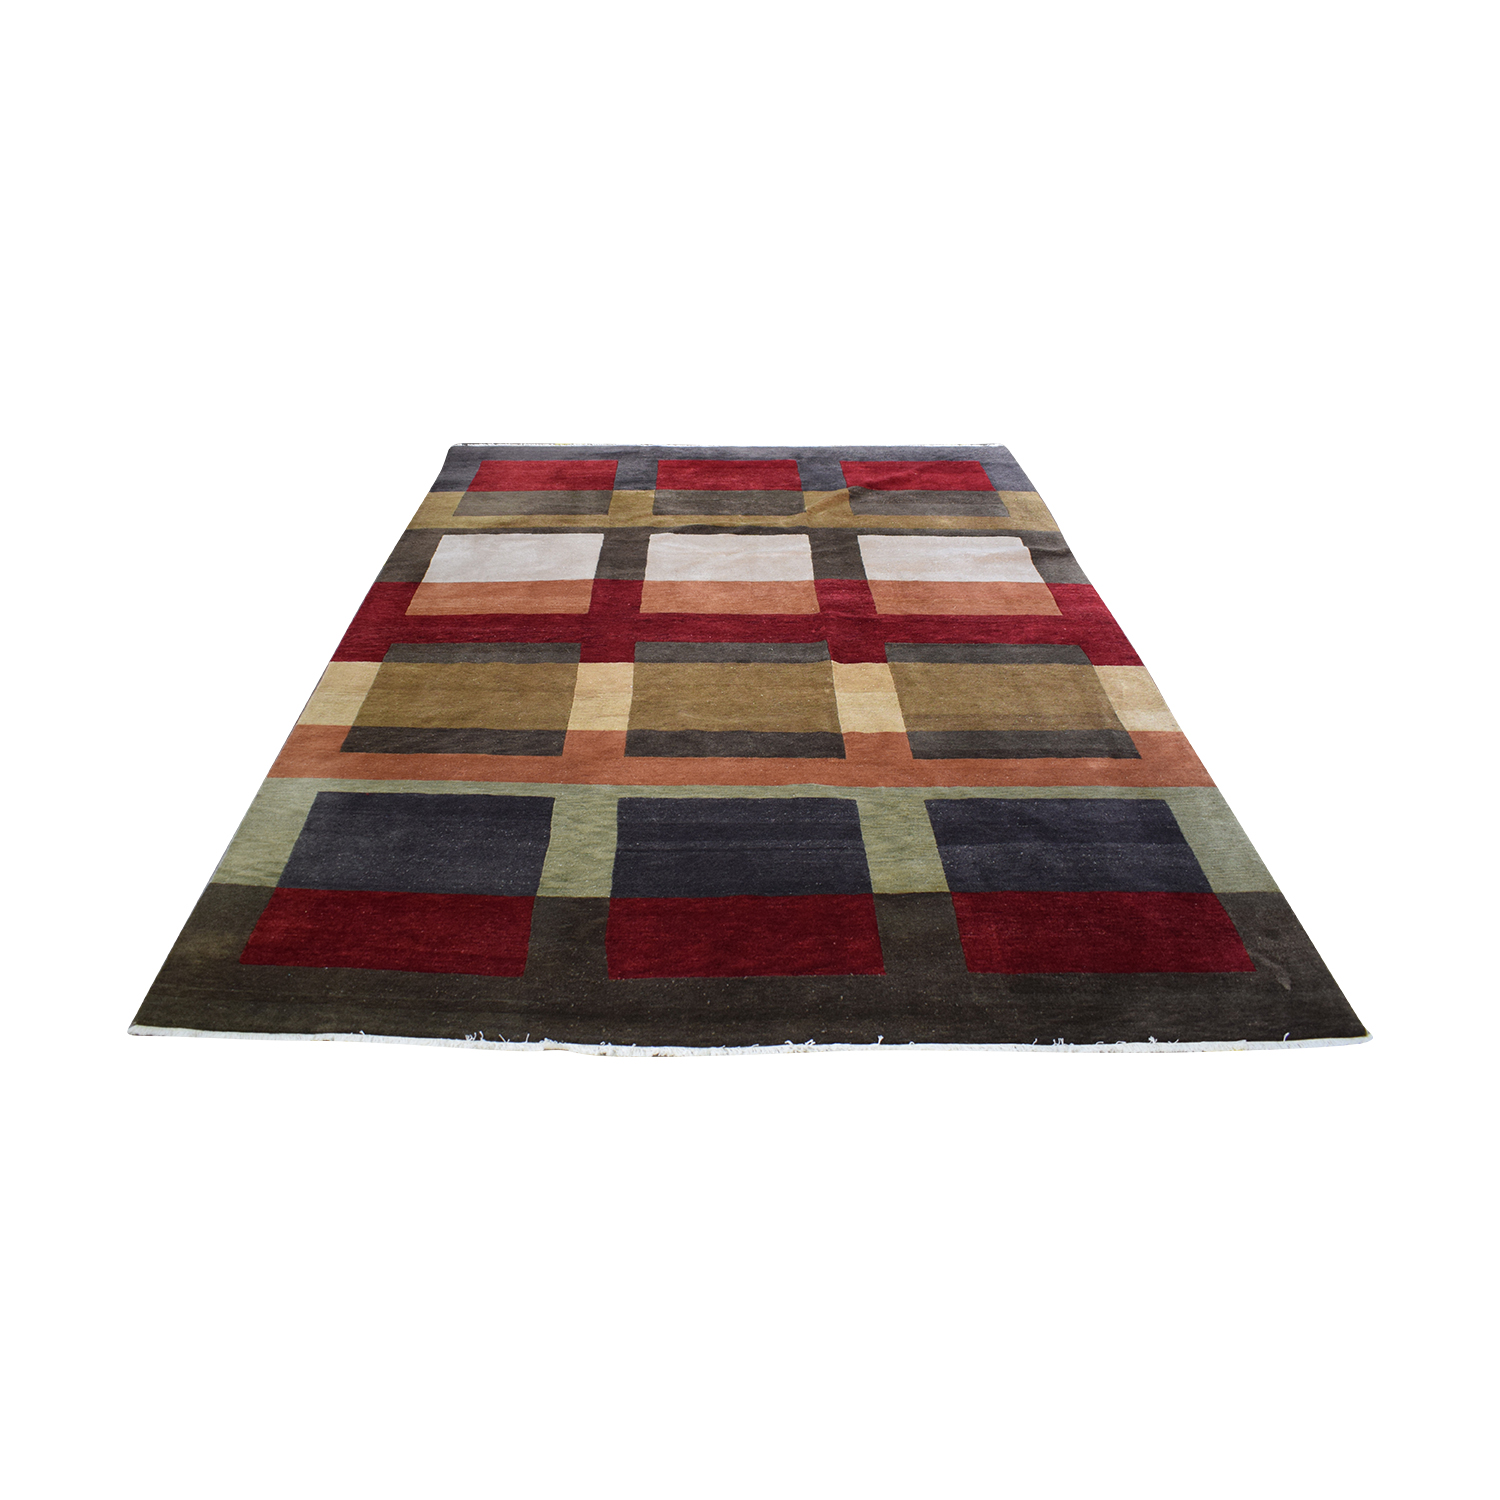 buy Ethan Allen Area Rug Ethan Allen Decor